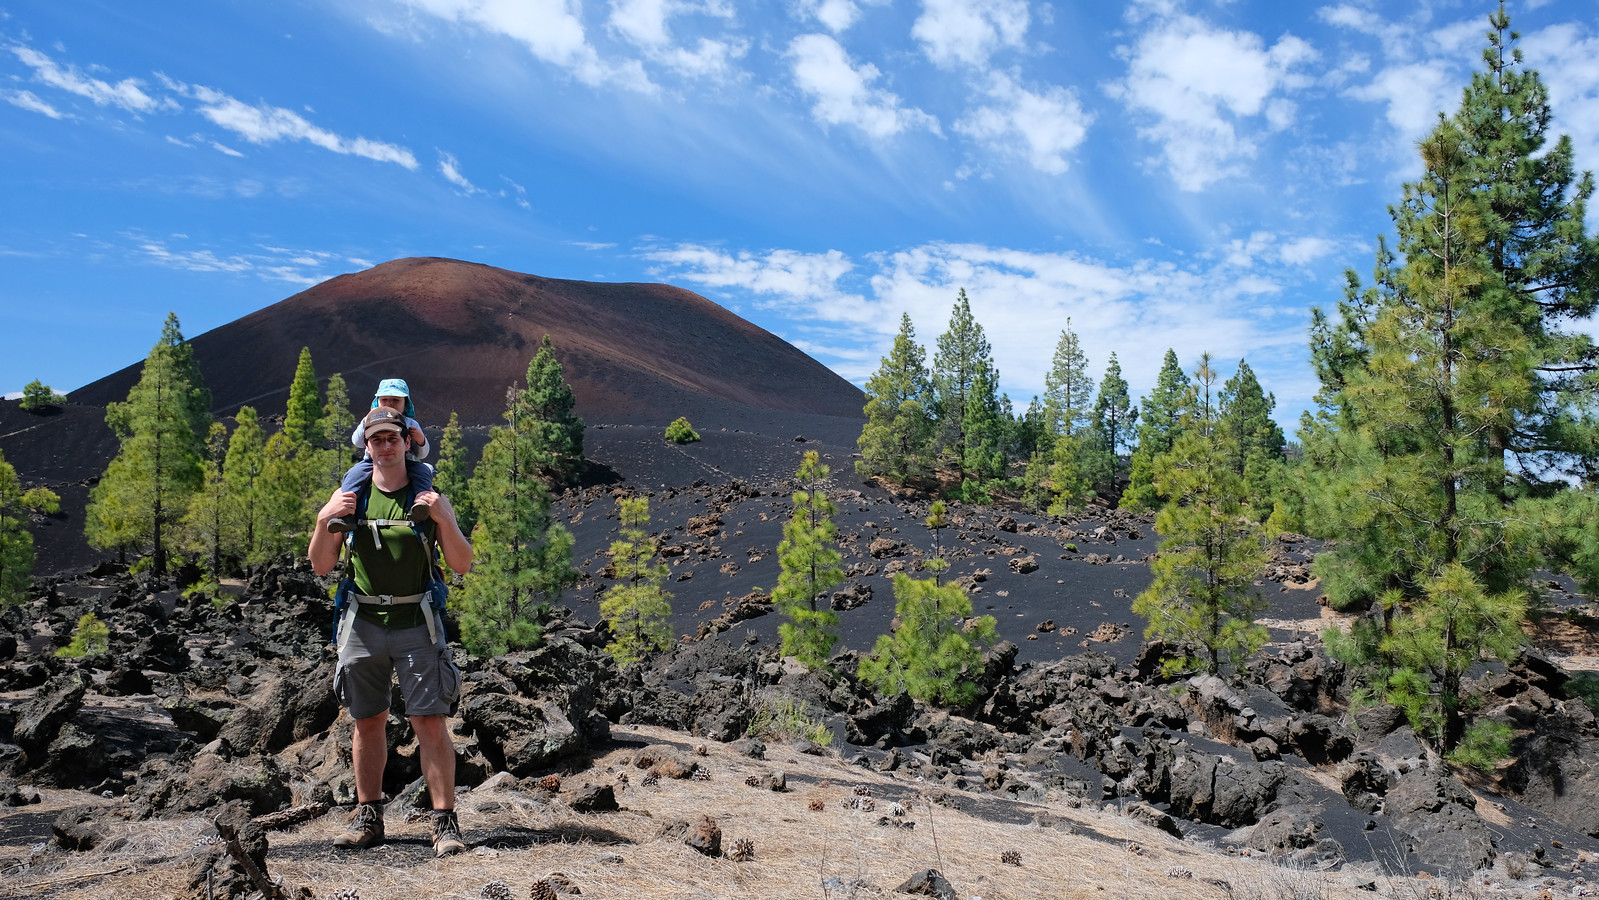 Chinyero Special Natural Reserve, Tenerife, Canary Islands, Spain